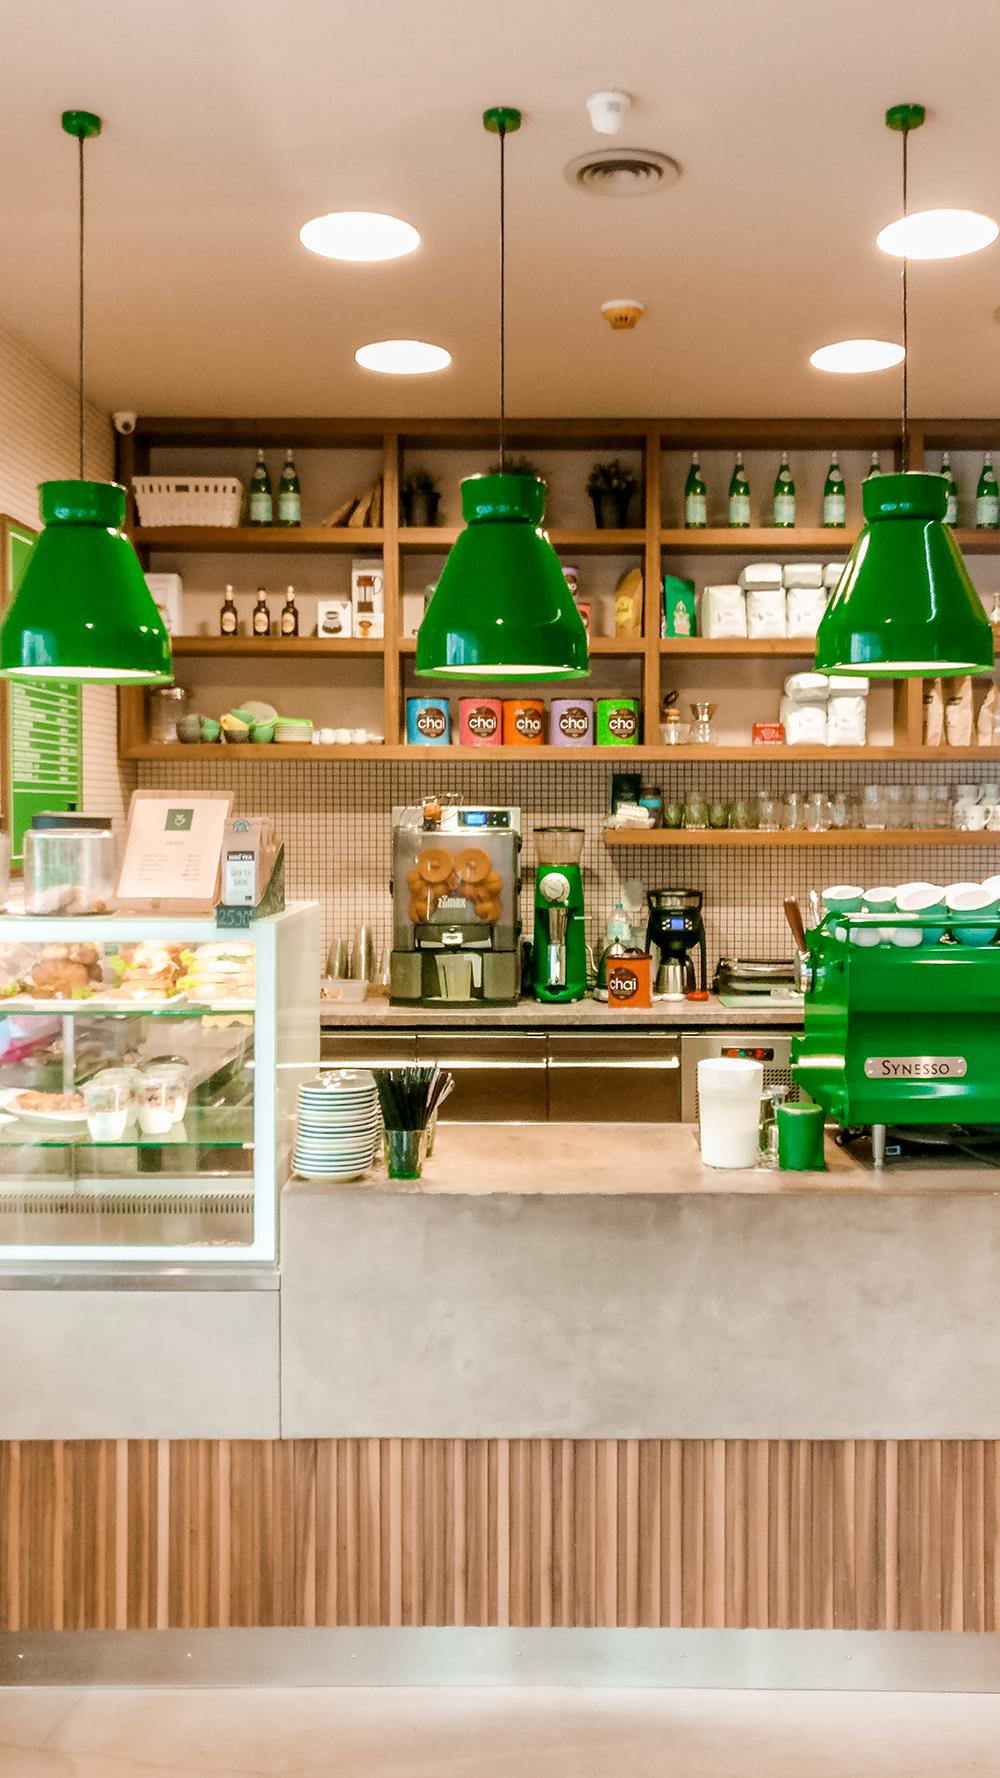 My Green Cup - Budapest's best breakfast & brunch places - Jászai Mari square and Pozsonyi street | Aliz's Wonderland